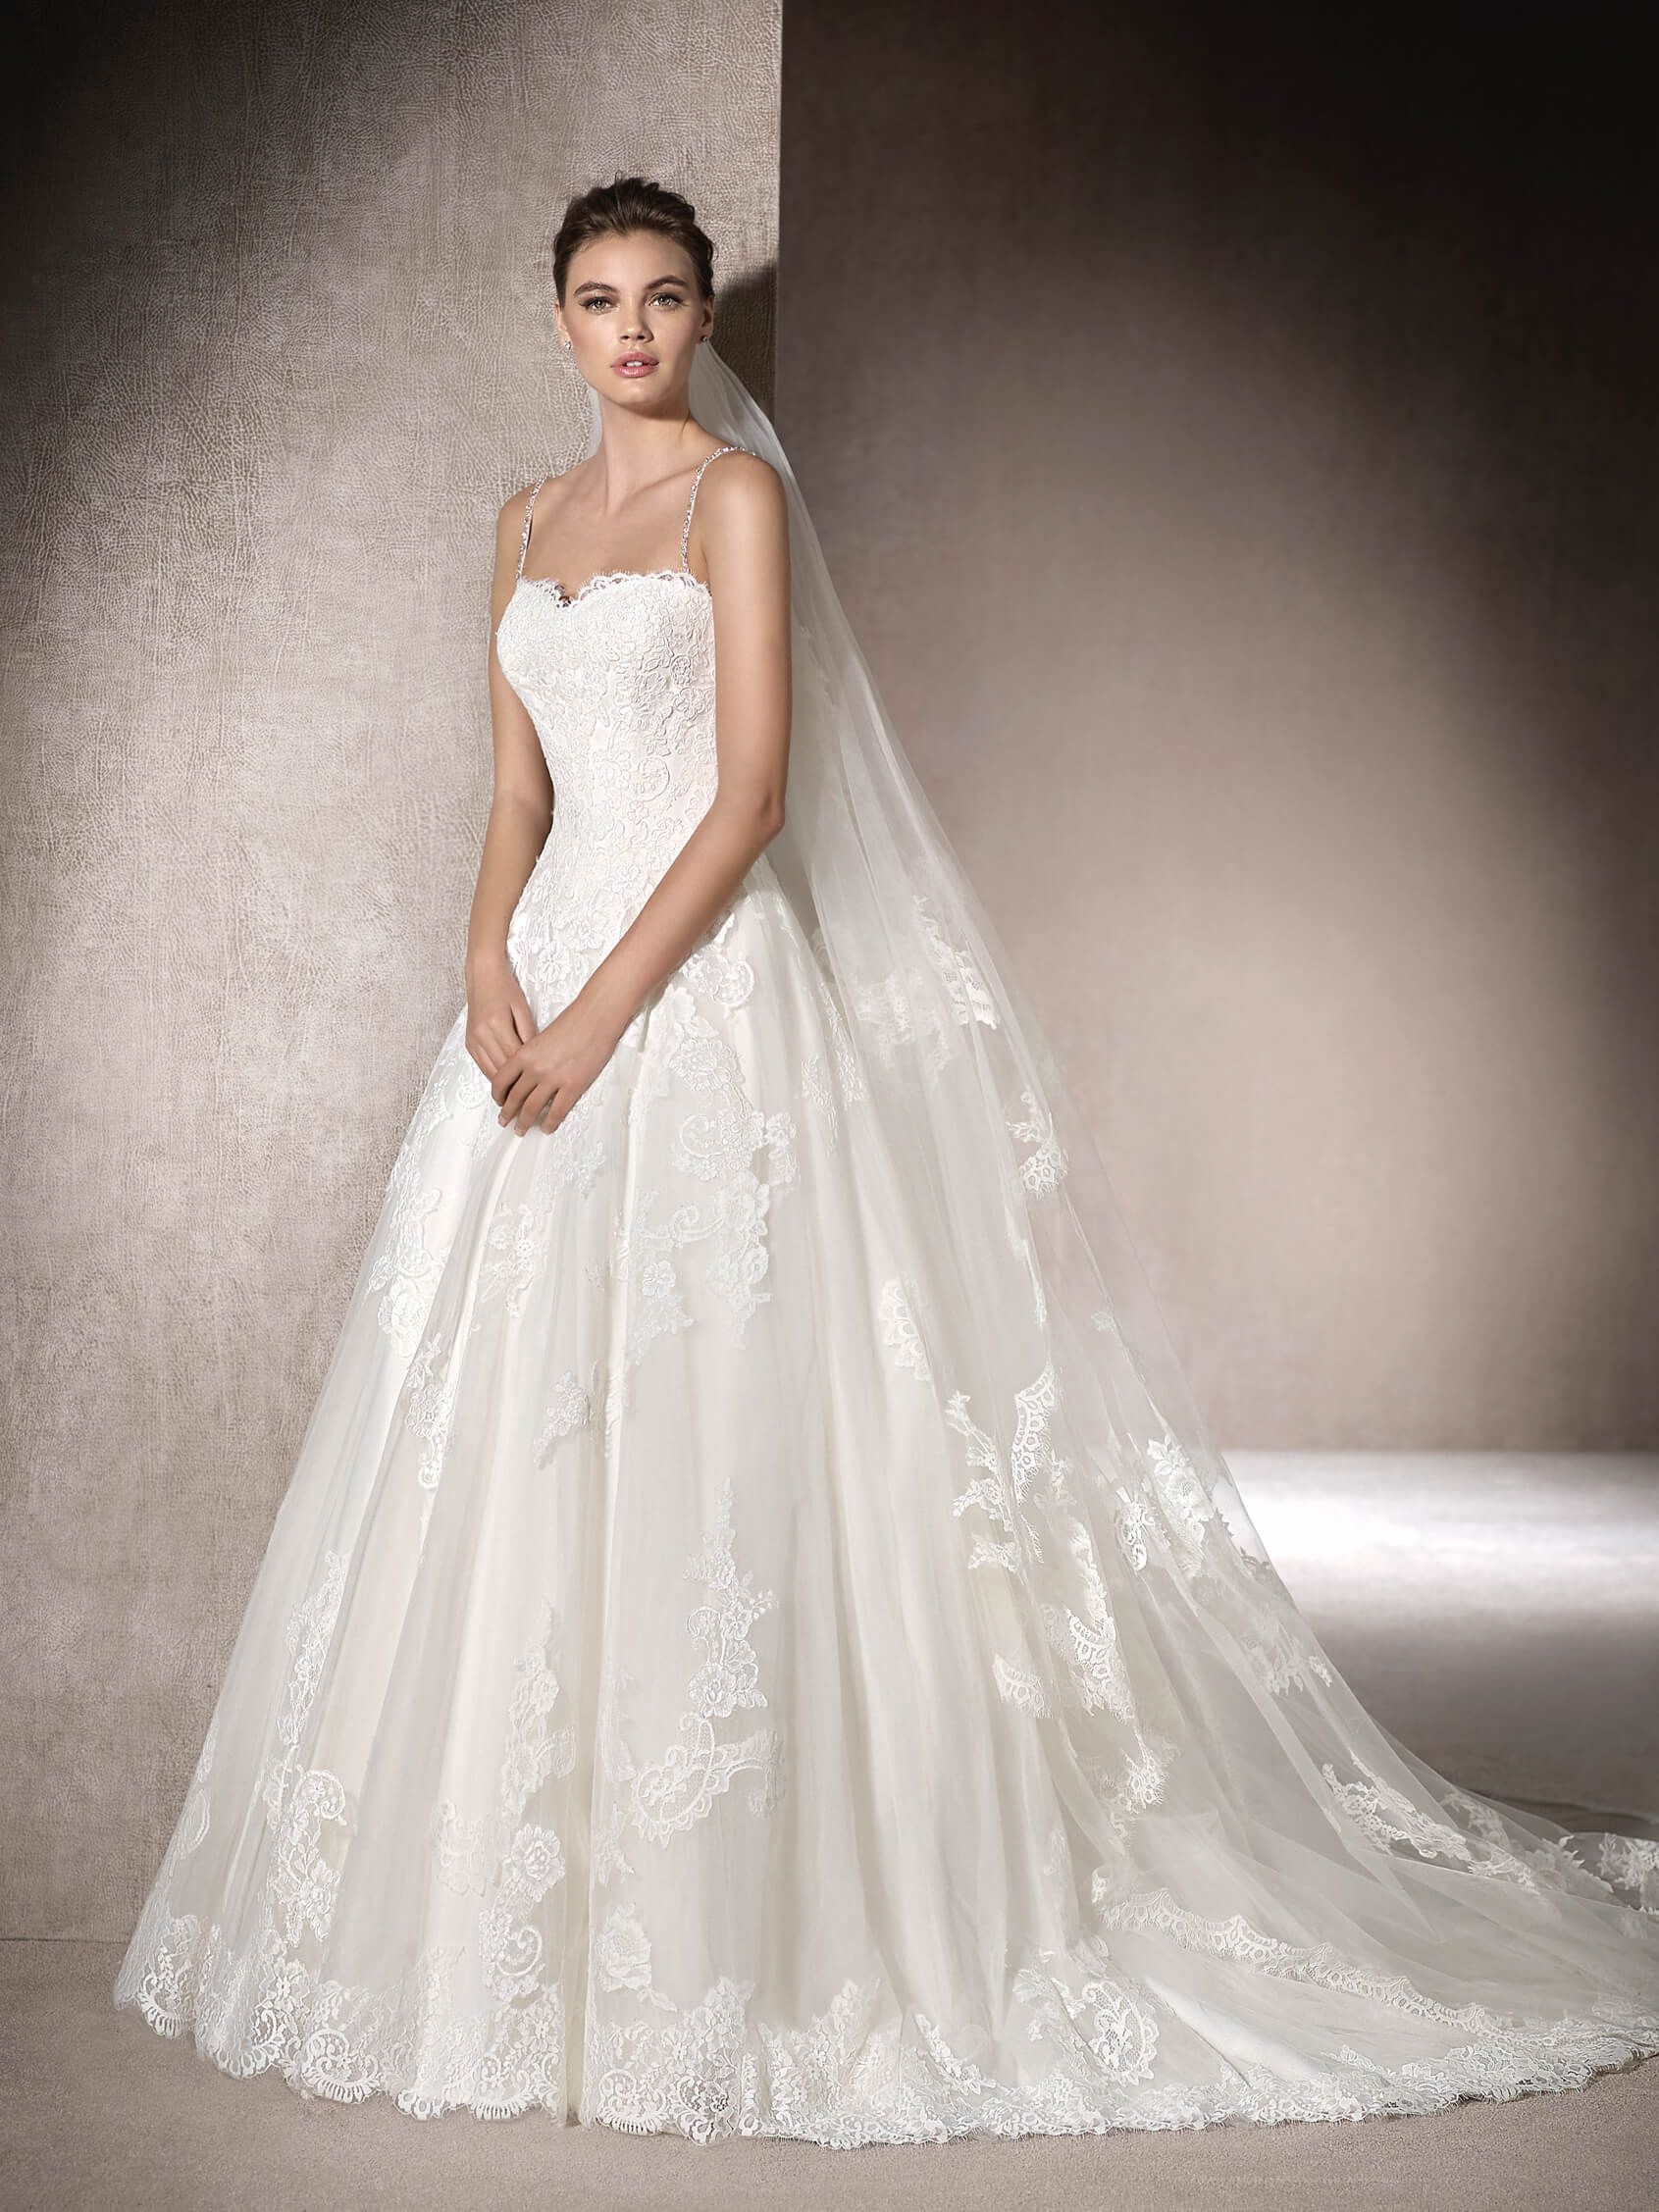 MALEN - Wedding dress in tulle, lace and gemstone embroidery   St. Patrick